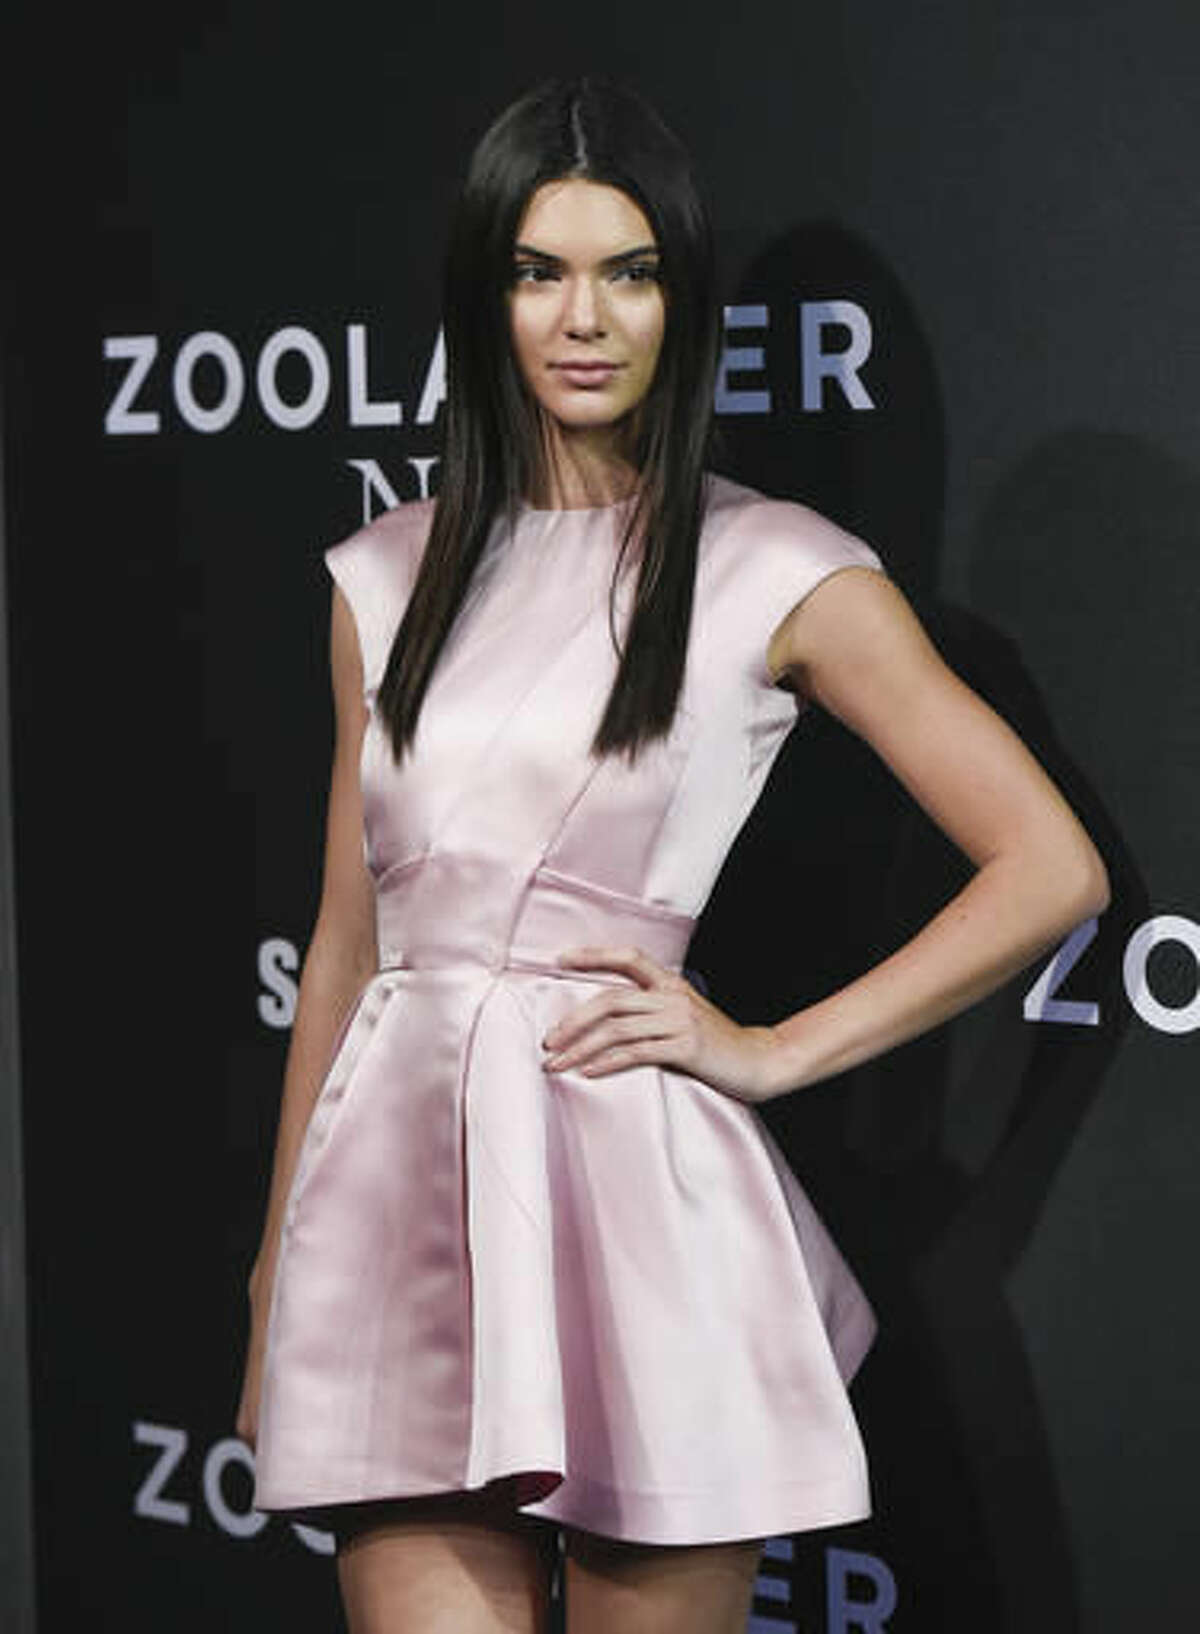 """FILE - In this Feb. 9, 2016 file photo, model Kendall Jenner attends the world premiere of """"Zoolander 2"""" in New York. Closing arguments are scheduled to begin Thursday, Oct. 20, in the stalking trial of a man arrested outside Jenner's Hollywood Hills home in August 2016. (Photo by Evan Agostini/Invision/AP, File)"""